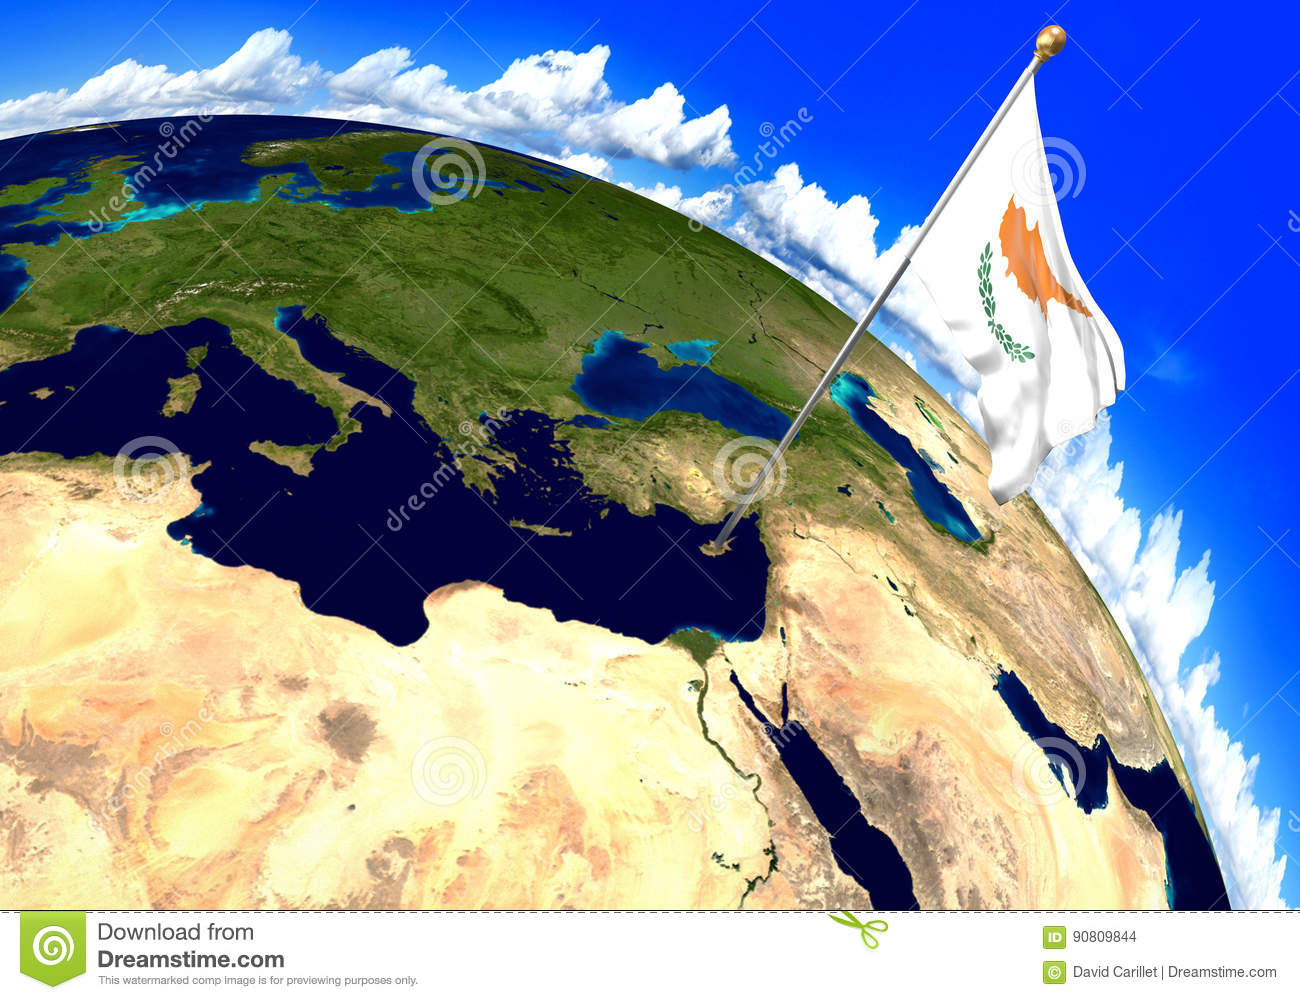 Where Is Cyprus Located On The World Map.Cyprus National Flag Marking The Country Location On World Map 3d